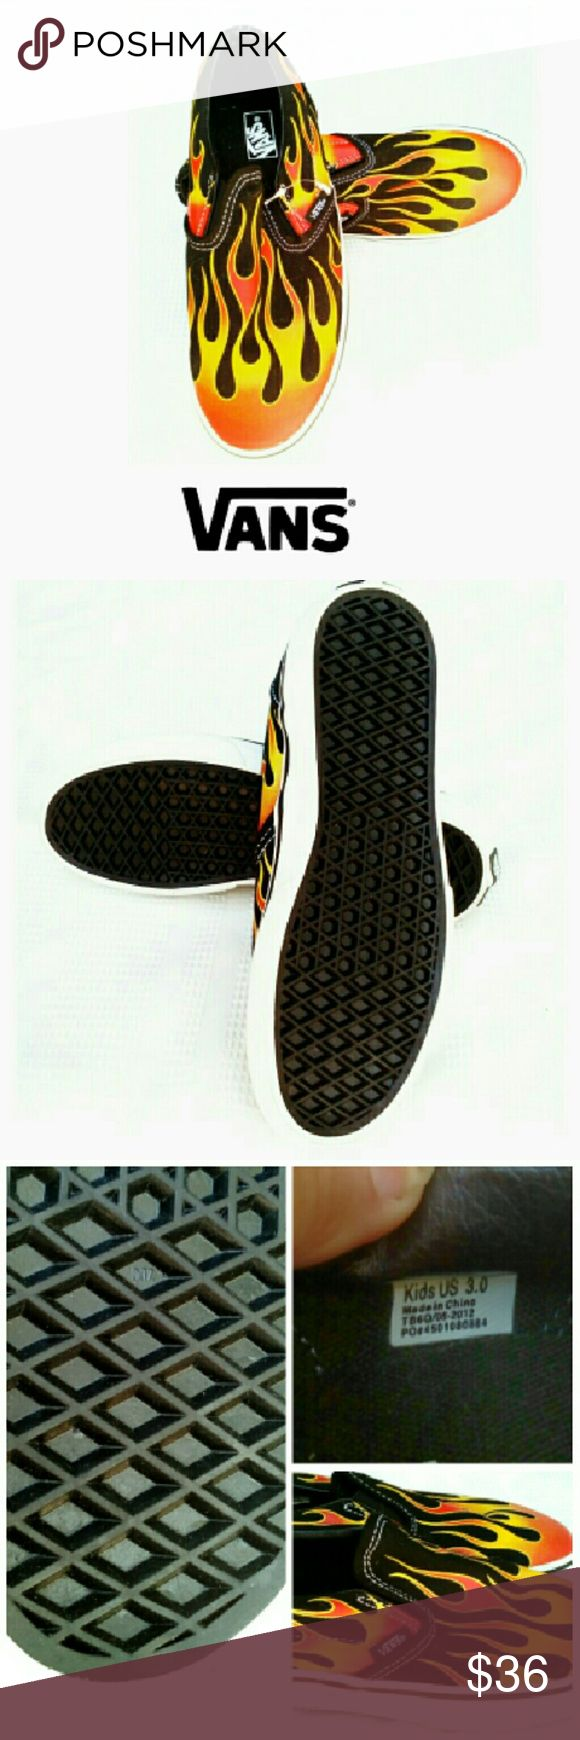 "★VANS""HOT ROD FLAMES""  SLIP ON SHOES *NEW VANS ""HOT ROD FLAMES"" SLIP ON SHOES *   Classic Van Slip Ons *   Black & Red Canvas *   Rubbed Perforated Soles *   Size Youth US 3.0 *   New, Never Worn *   Sold Out on Sites Vans Shoes Sneakers"